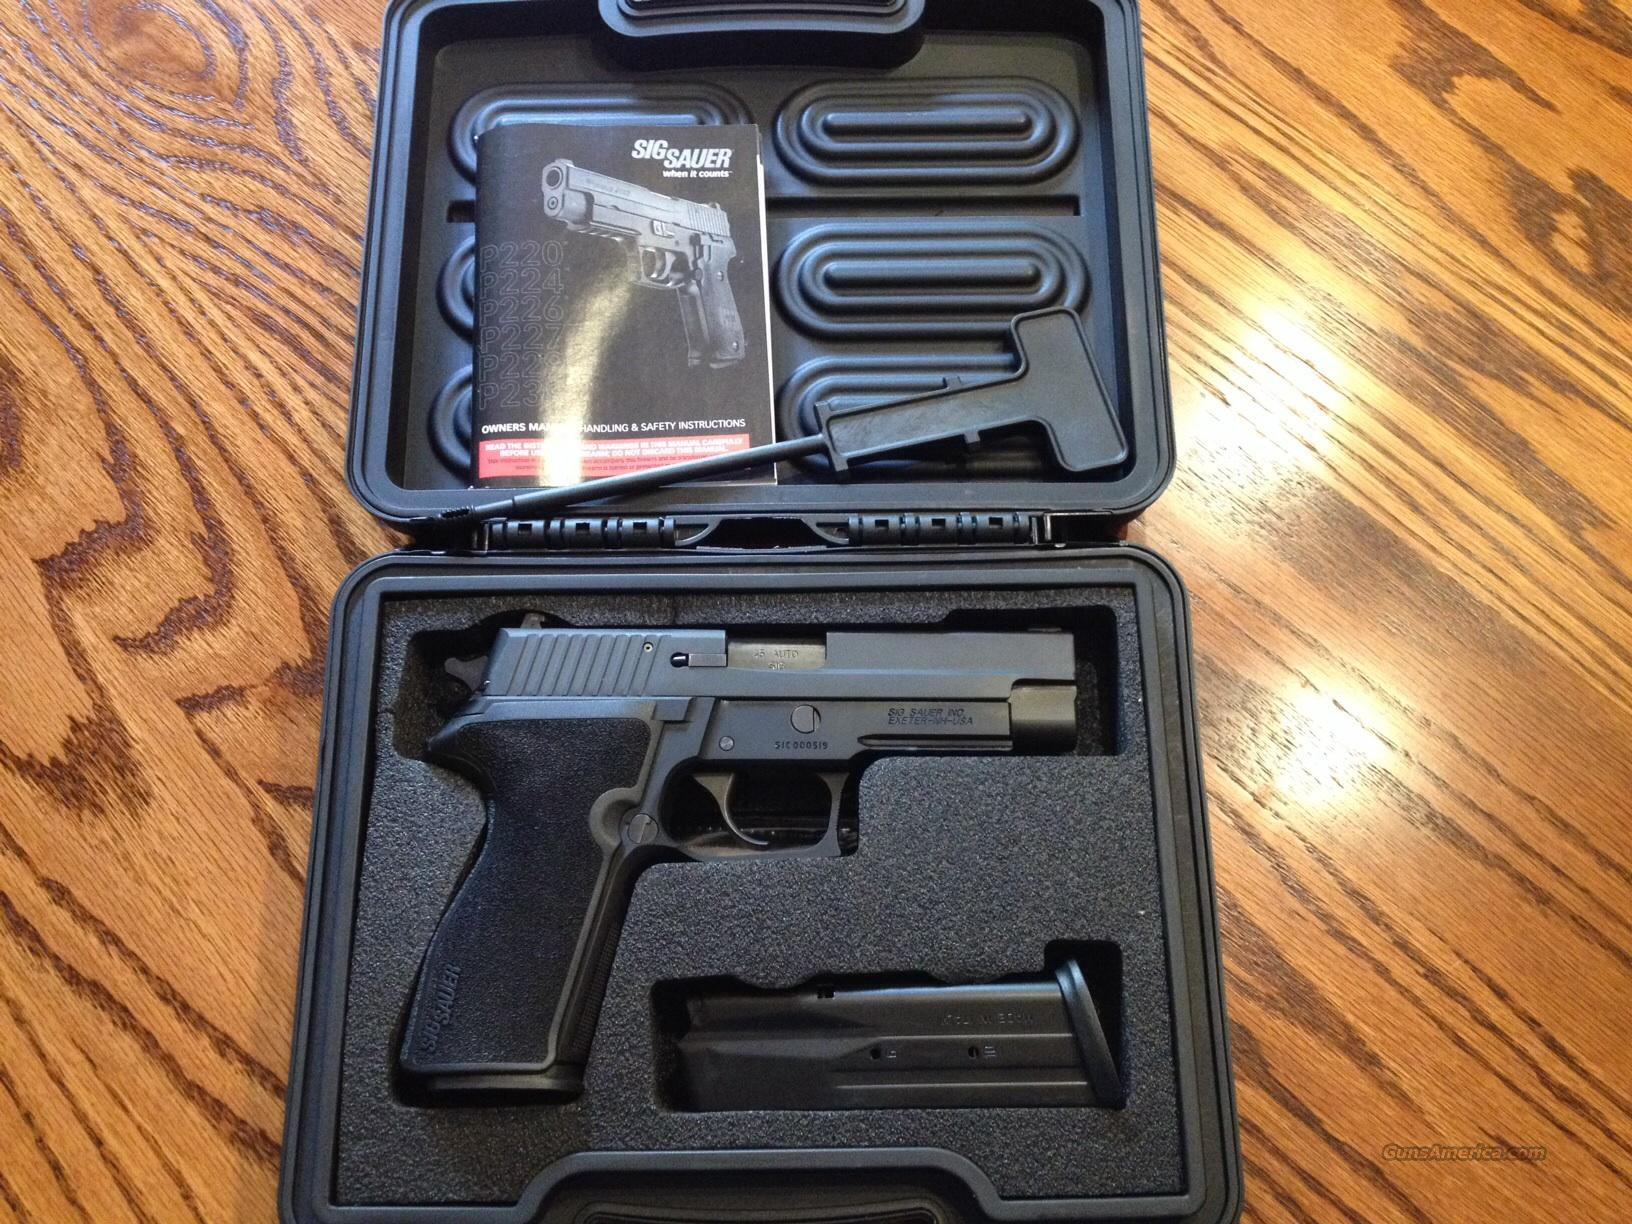 Sig Sauer P227 - 10+1 capacity of 45 ACP - Extras!  Guns > Pistols > Sig - Sauer/Sigarms Pistols > Other